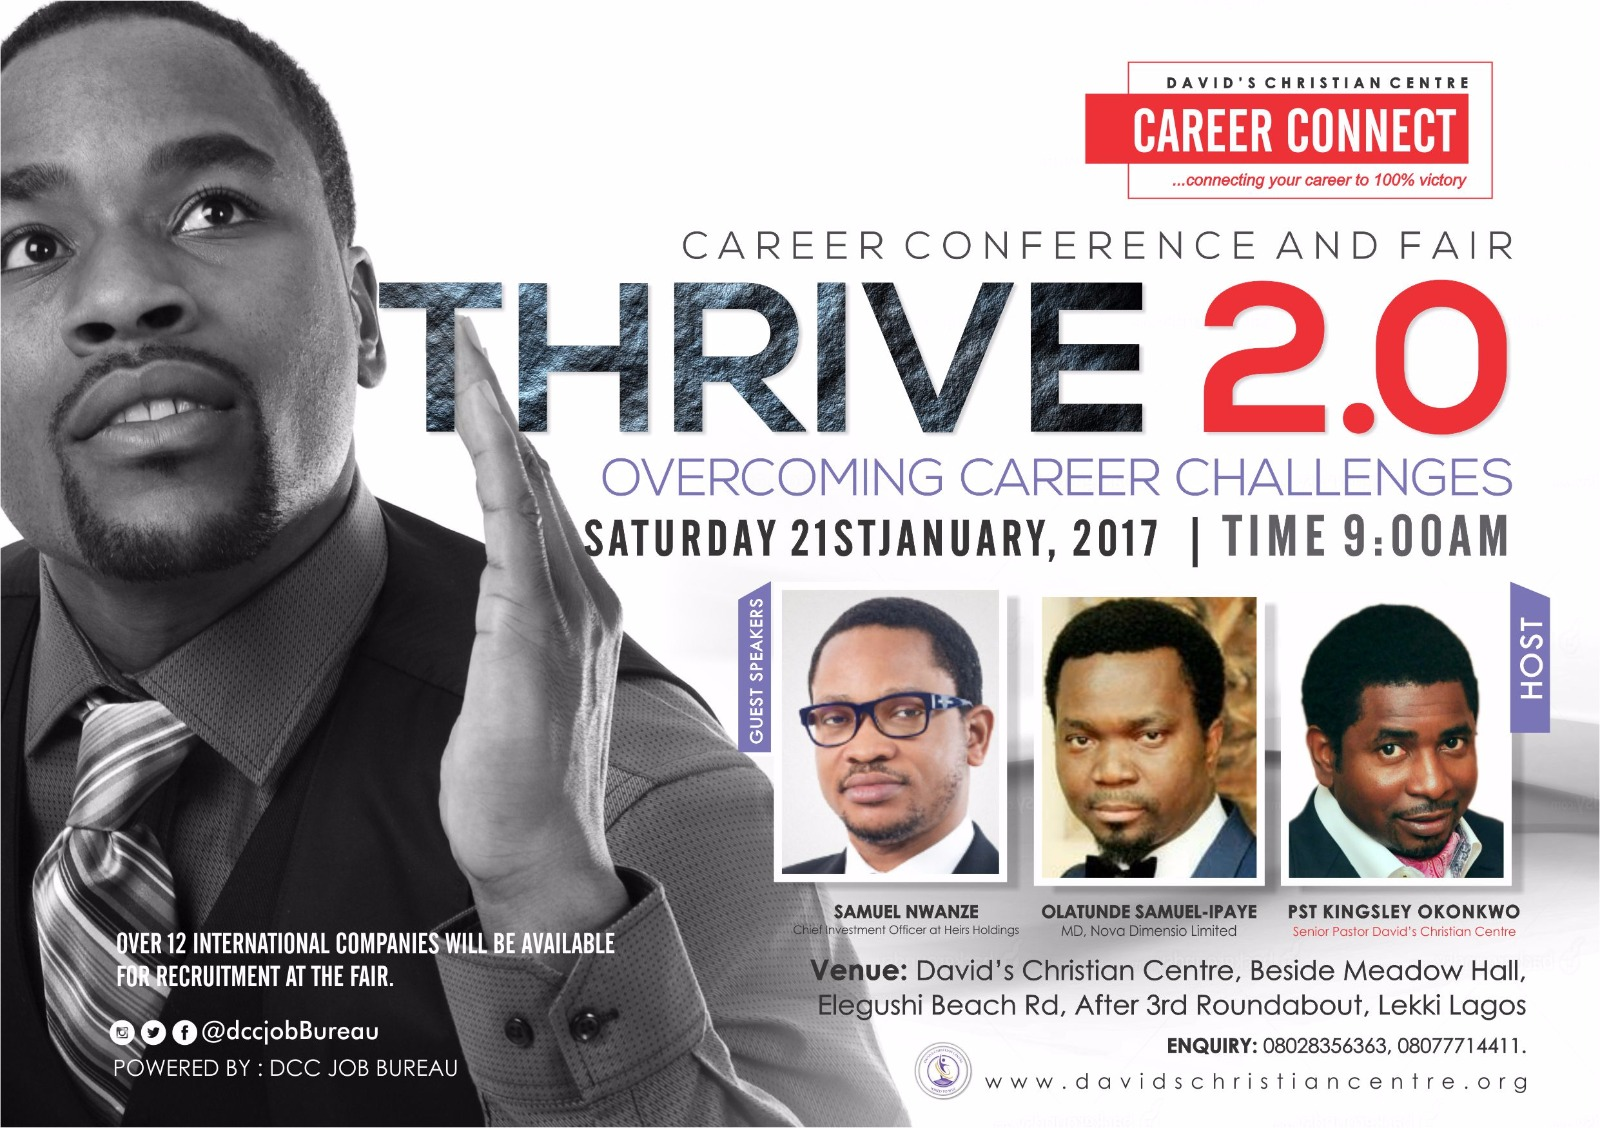 OVERCOMING CAREER CHALLENGES (Thrive 2.0)